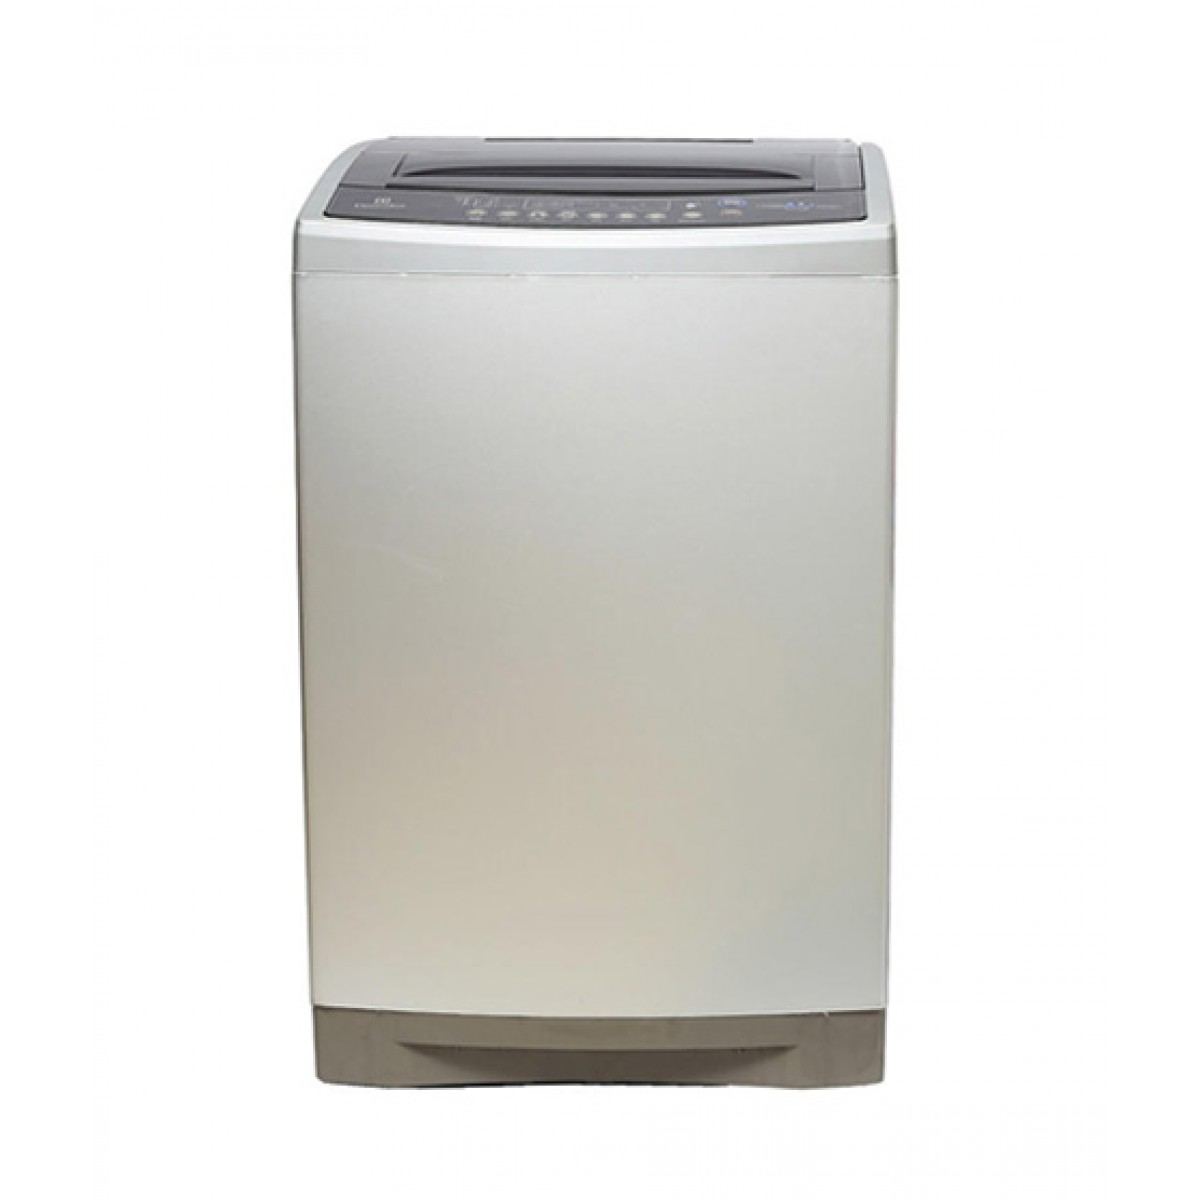 Electrolux Fully Automatic Top Load Washing Machine (EWT-124S)